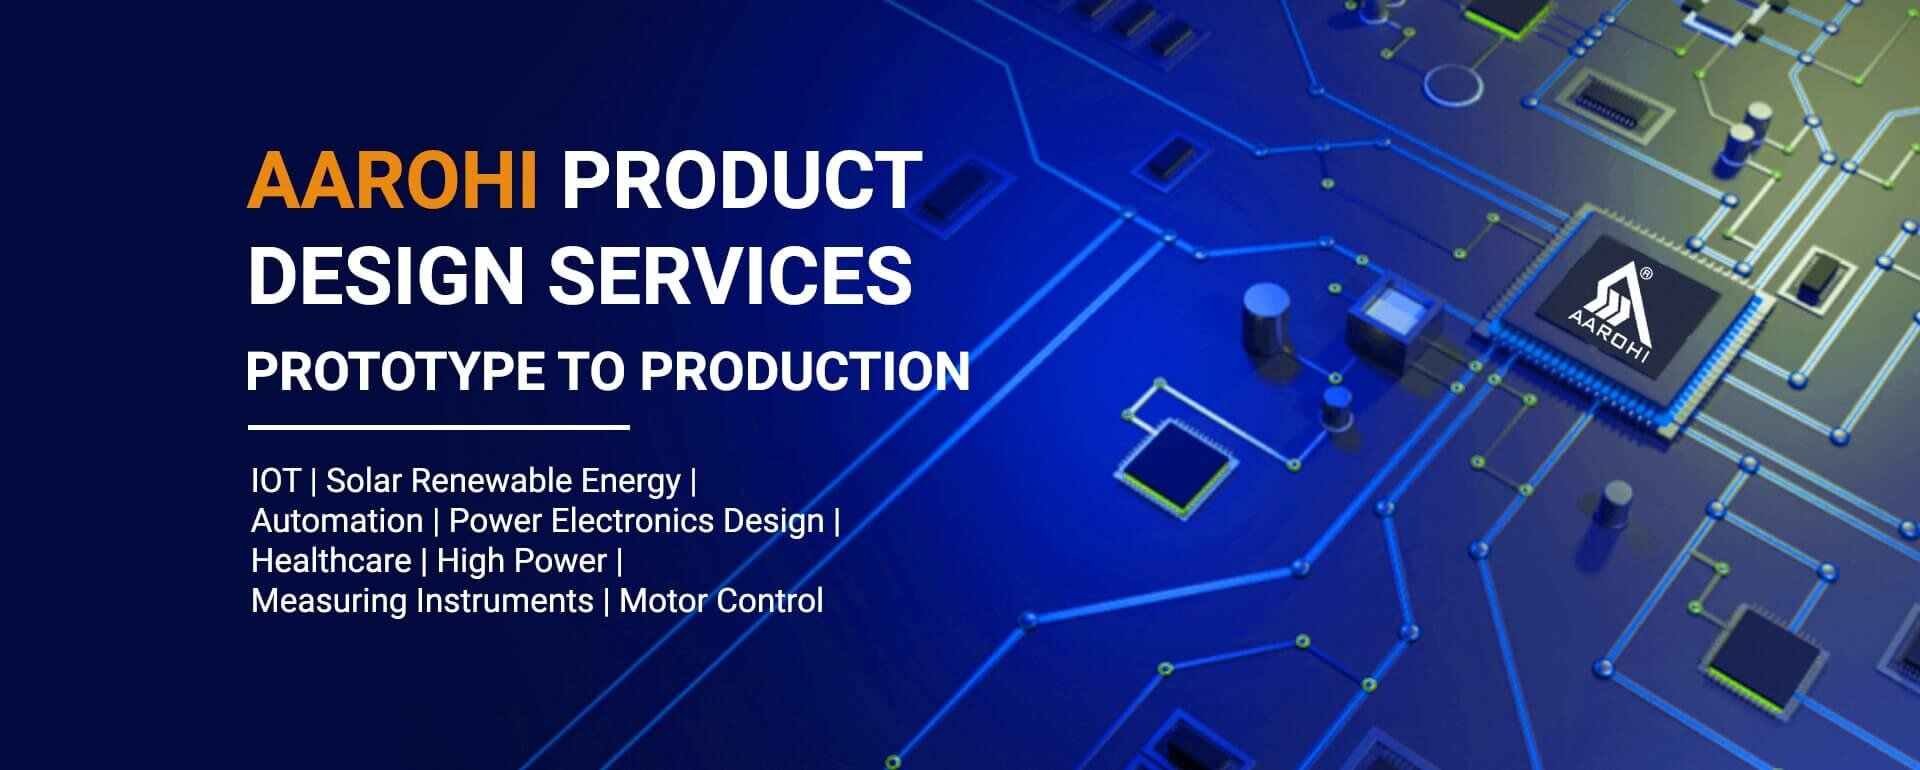 Aarohi Product-Design-Services